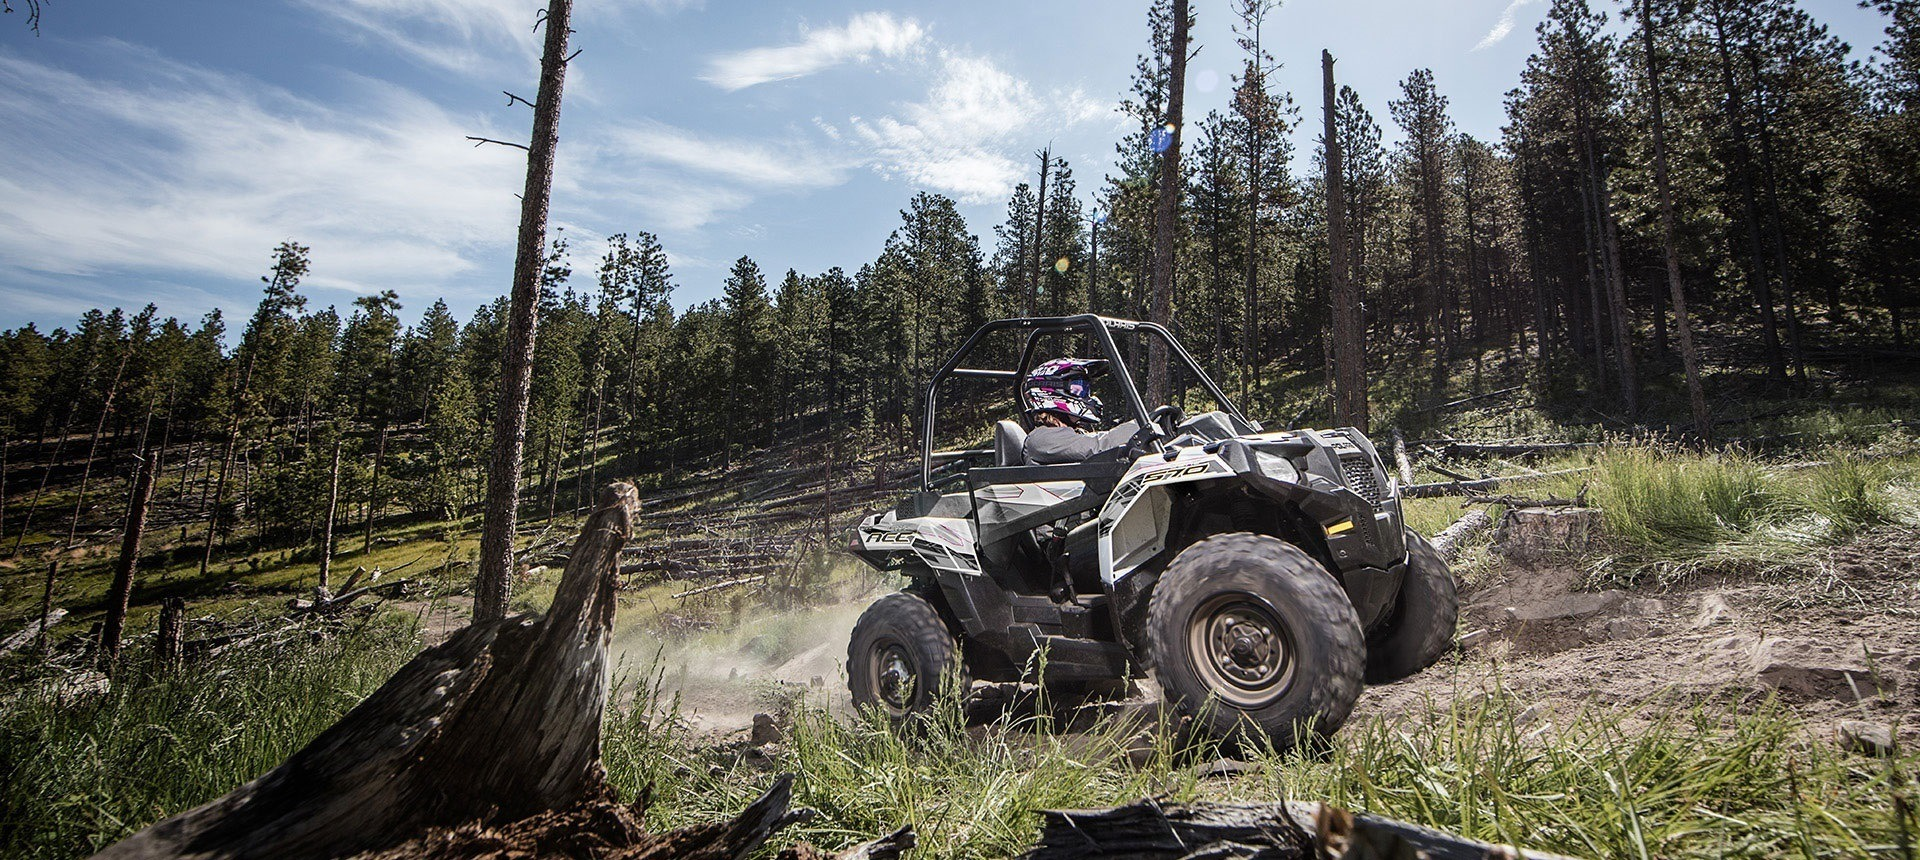 2019 Polaris Ace 570 EPS in Portland, Oregon